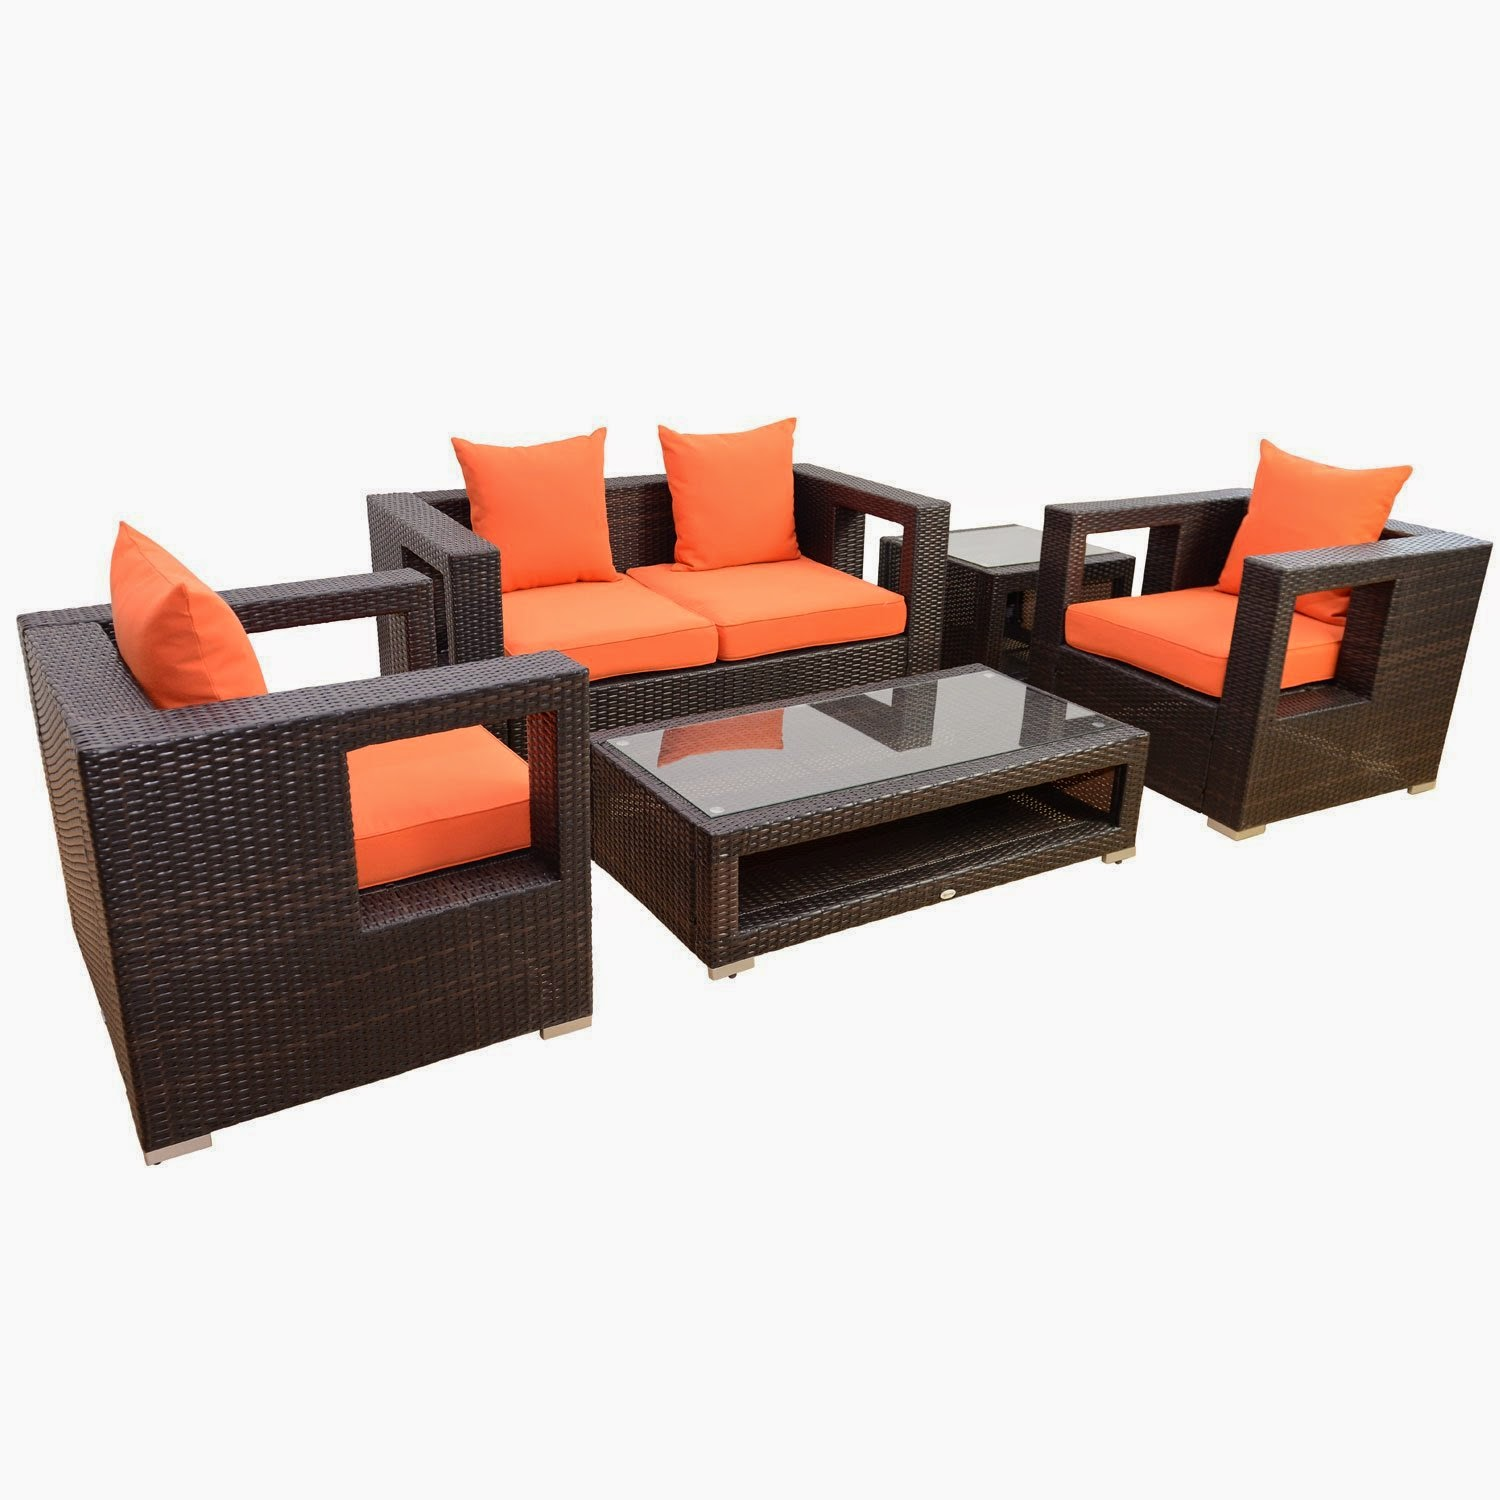 get discount outsunny 5pc outdoor pe rattan wicker. Black Bedroom Furniture Sets. Home Design Ideas